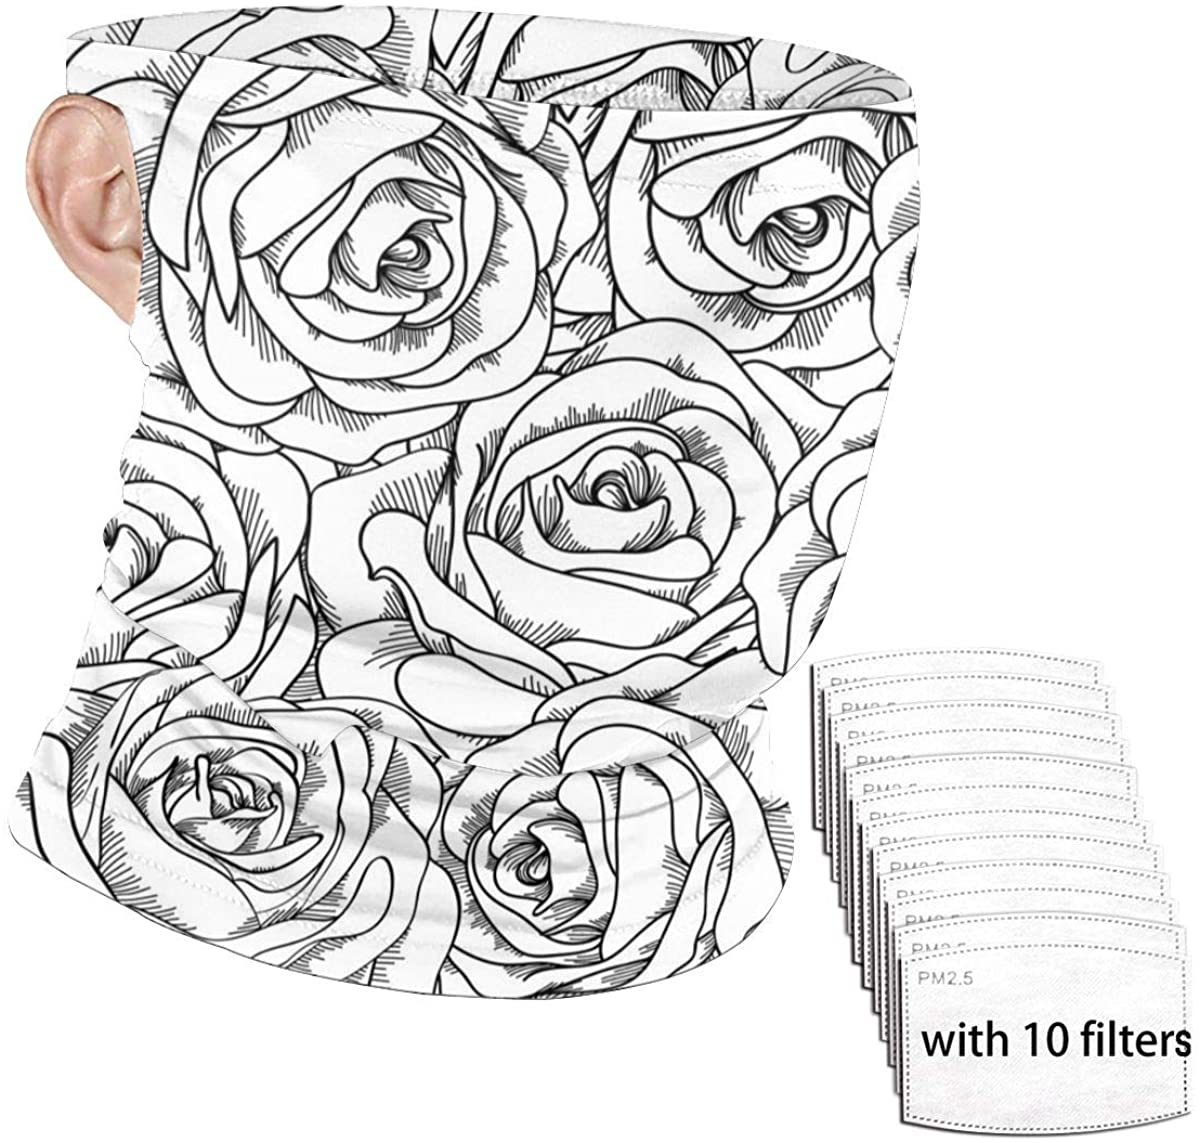 Black White Rose Seamless Bandana Face Mask Scarf Ear Loops with 10 Filters, Anti-Dust Neck Gaiter Headband Windproof Headwear Balaclava for Fishing Shopping